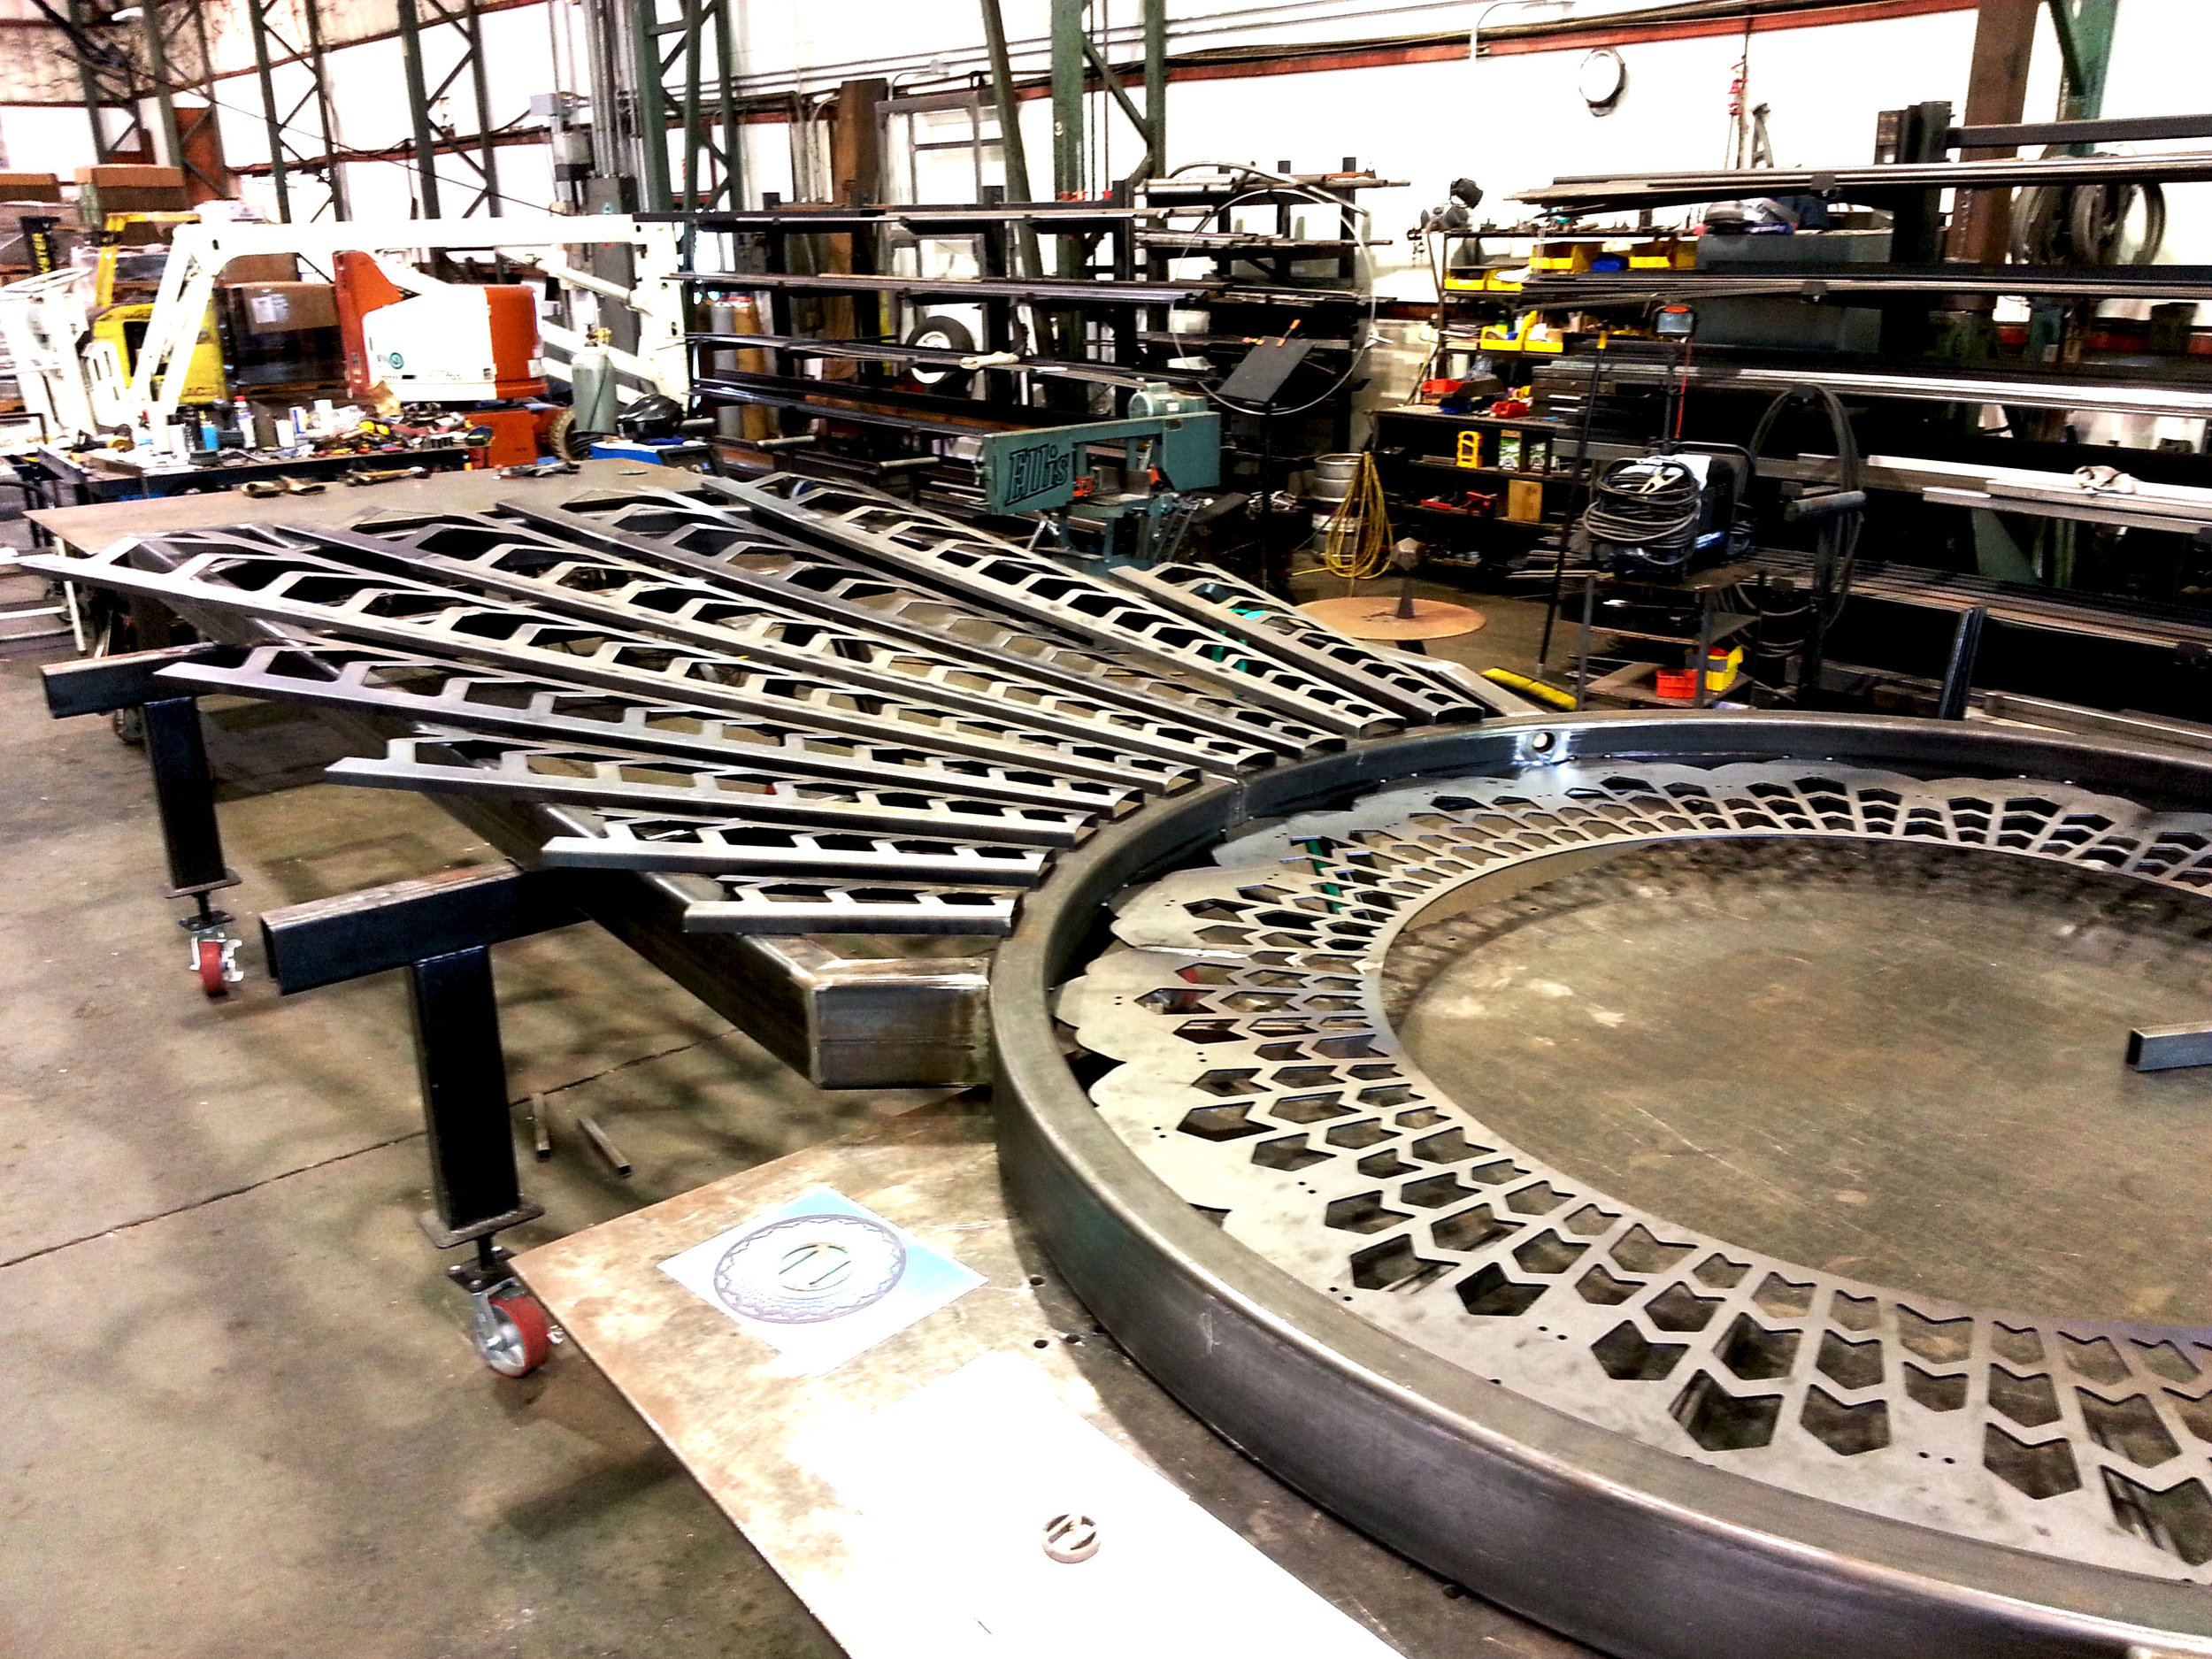 Fabrication of Ninkasi Brewing Administration Building Automatic Gate